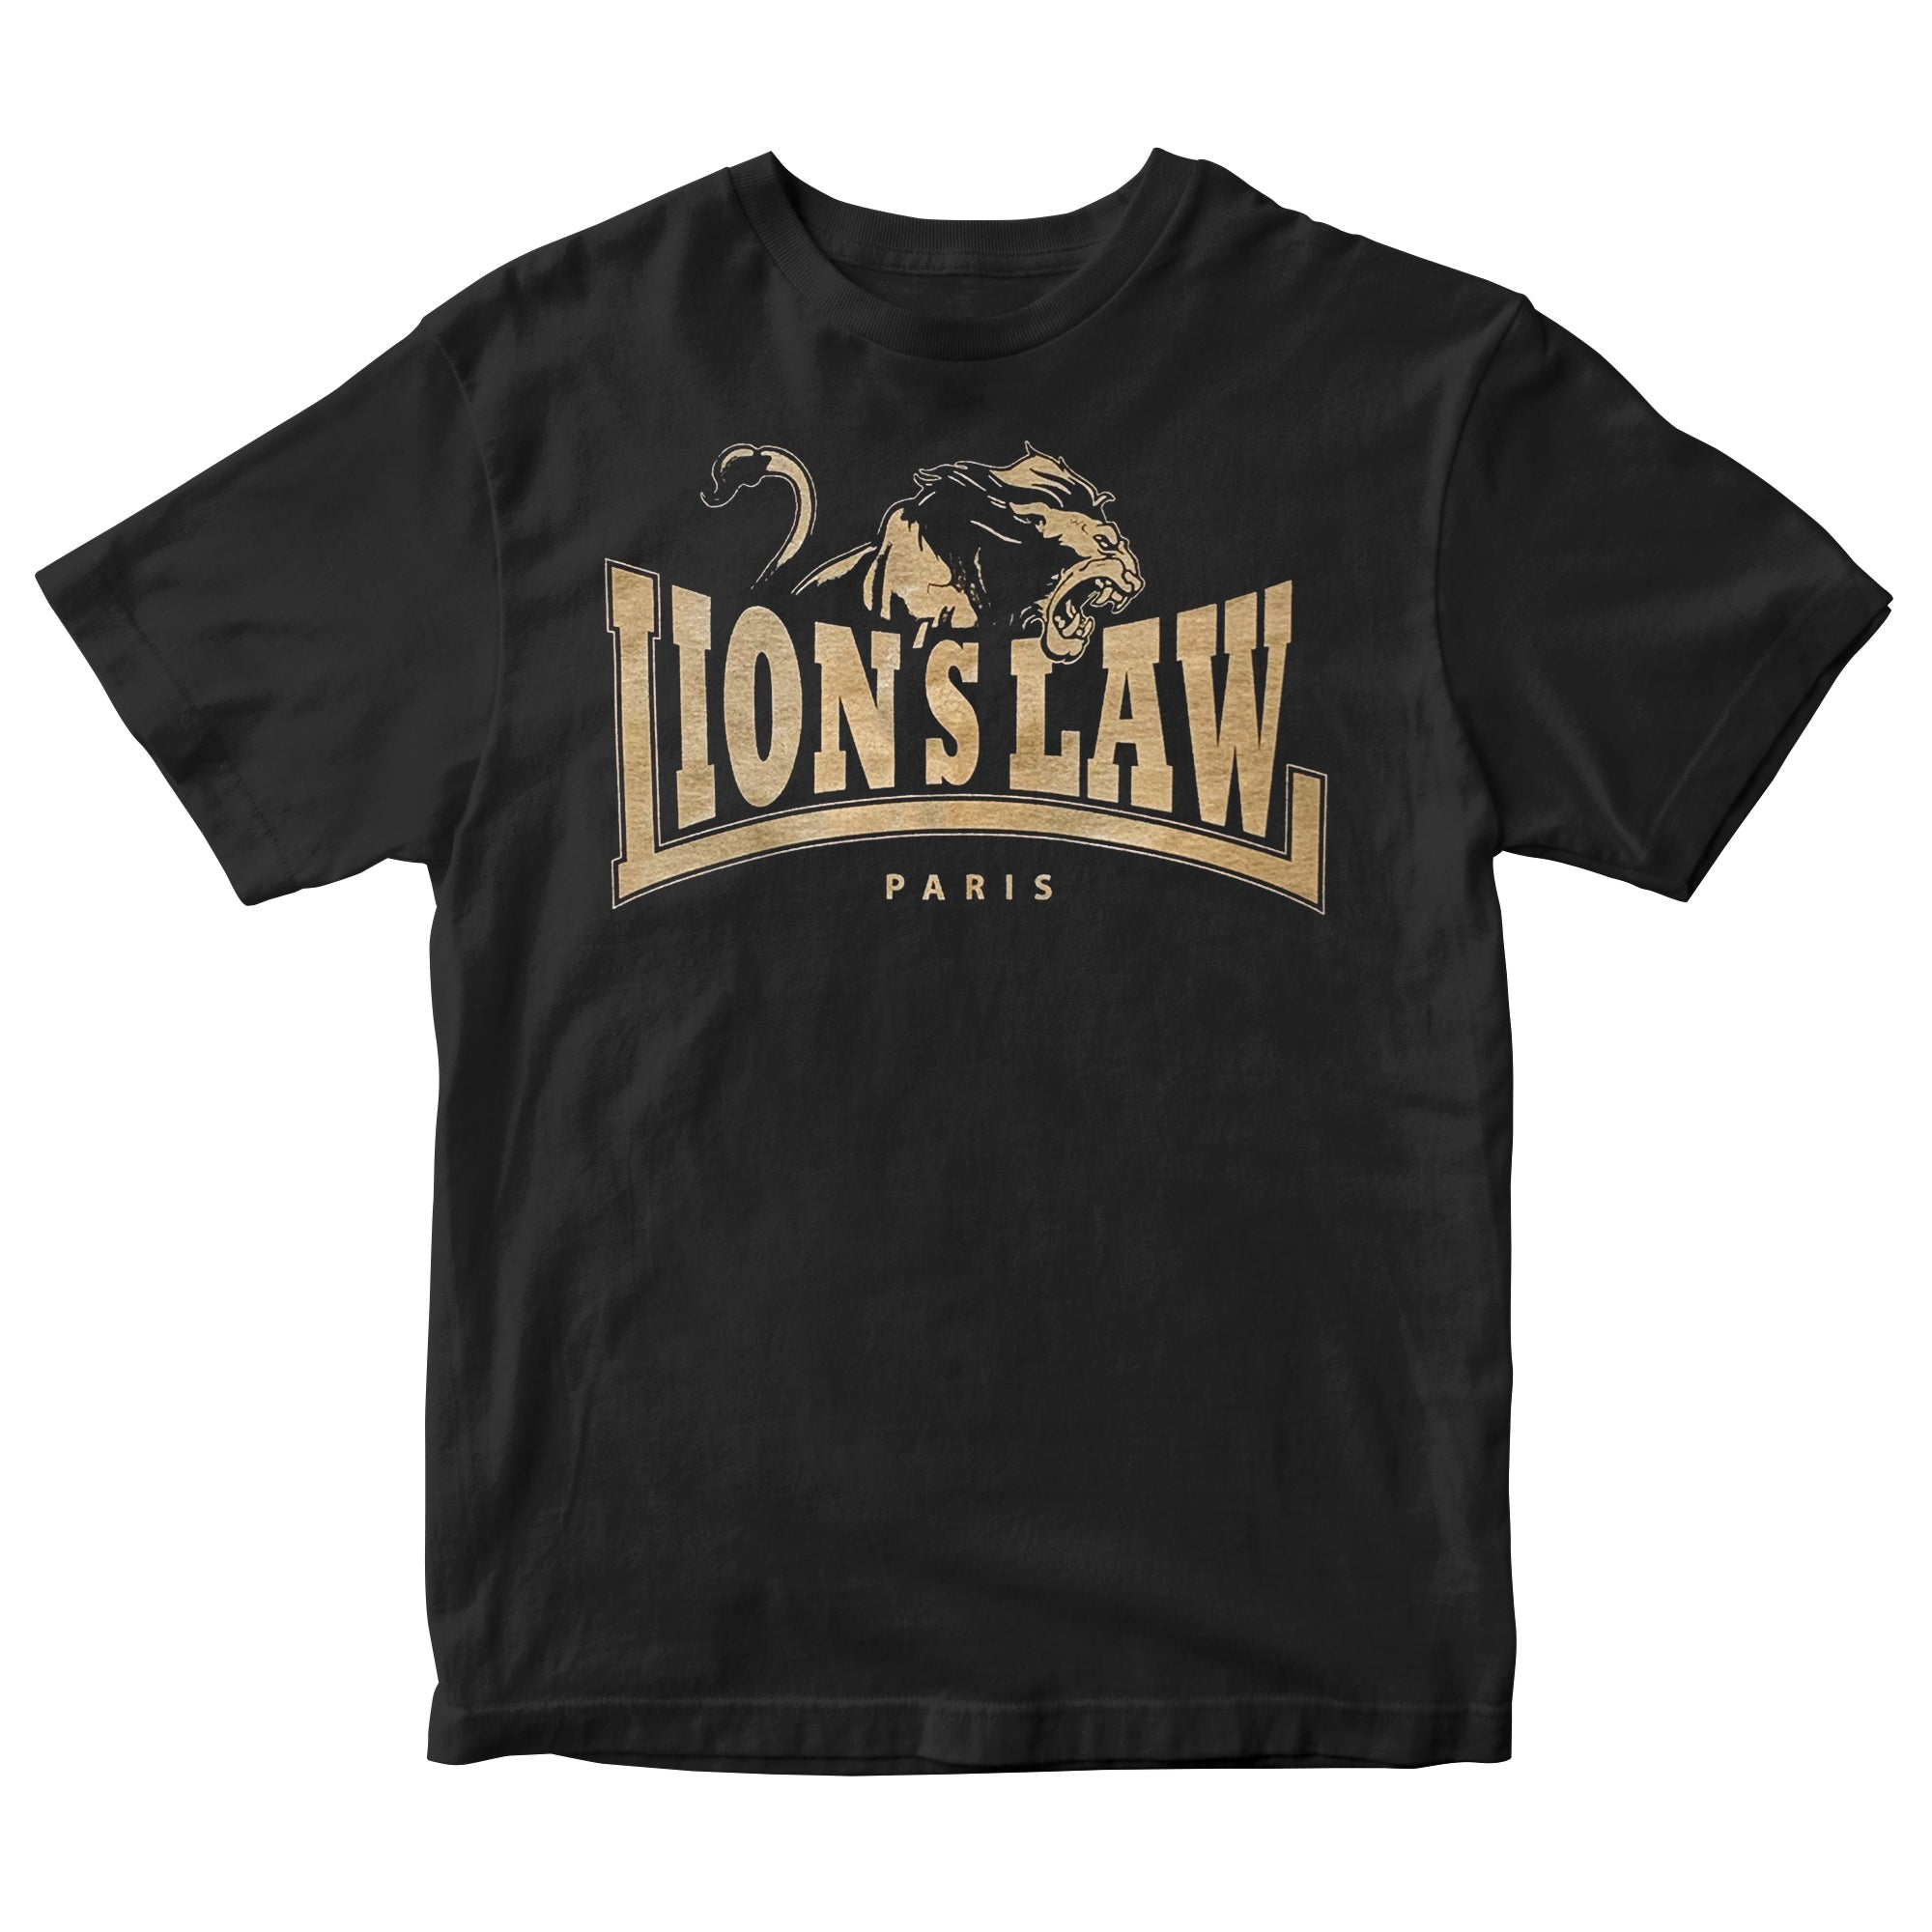 Lion's Law - Paris Logo - Black - T-Shirt